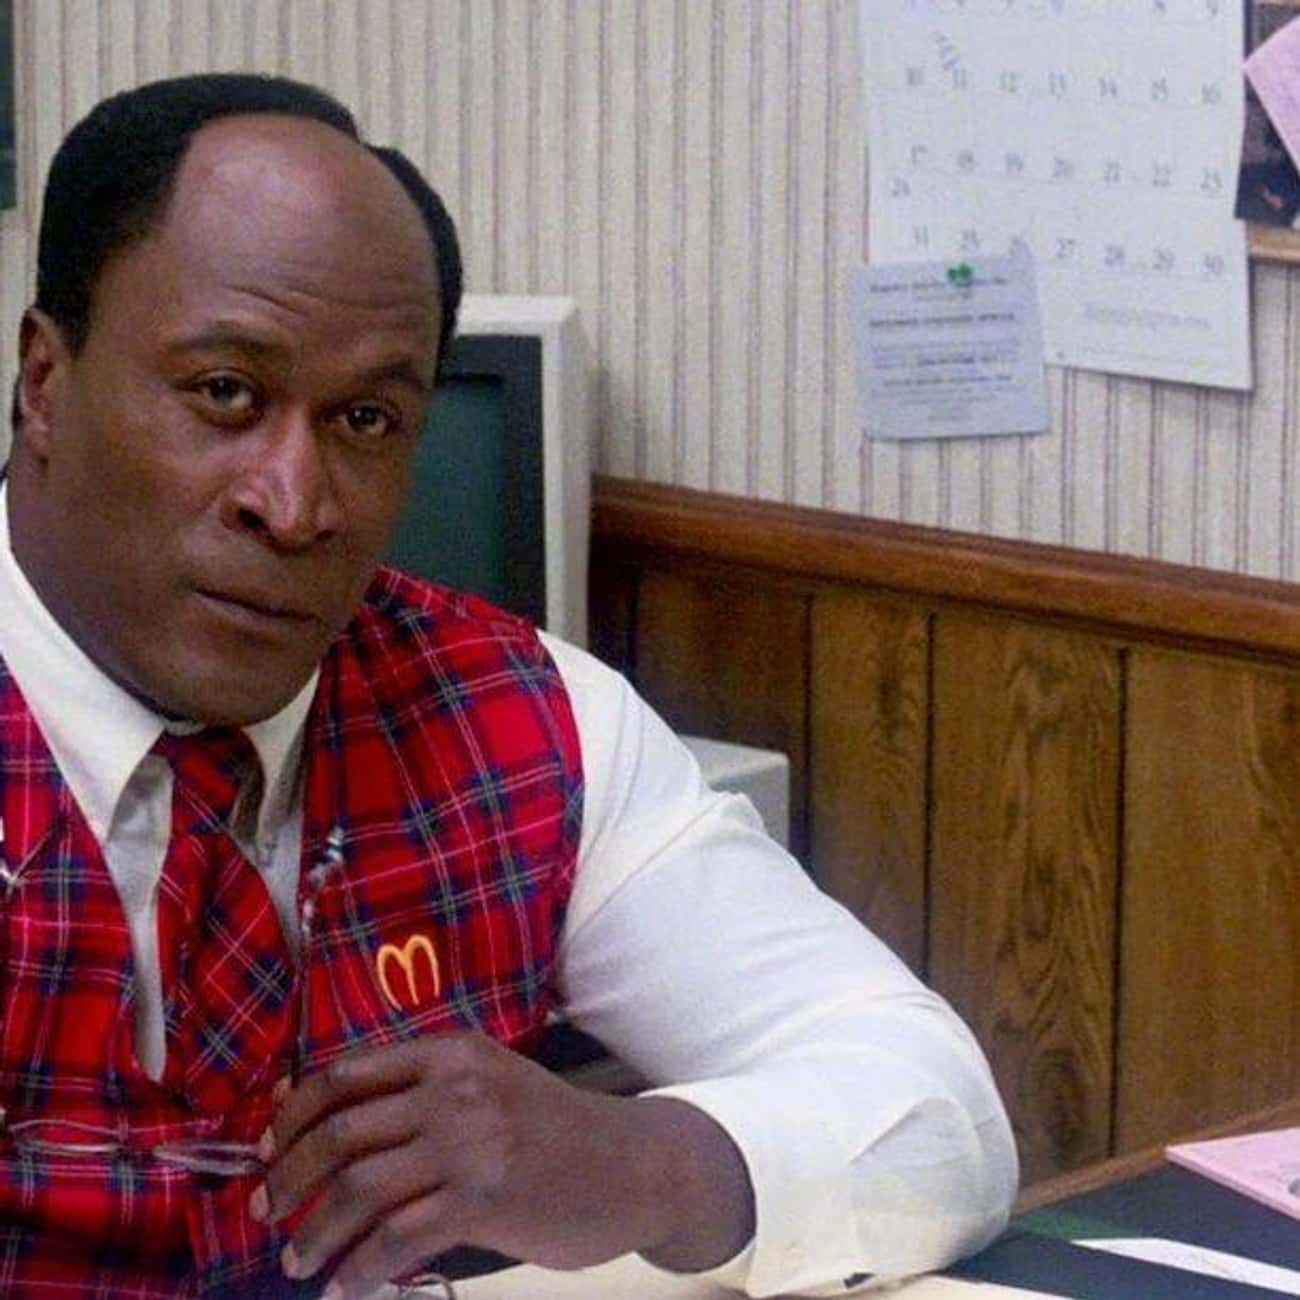 Stay Off Drugs is listed (or ranked) 2 on the list The Funniest Quotes From 'Coming to America'